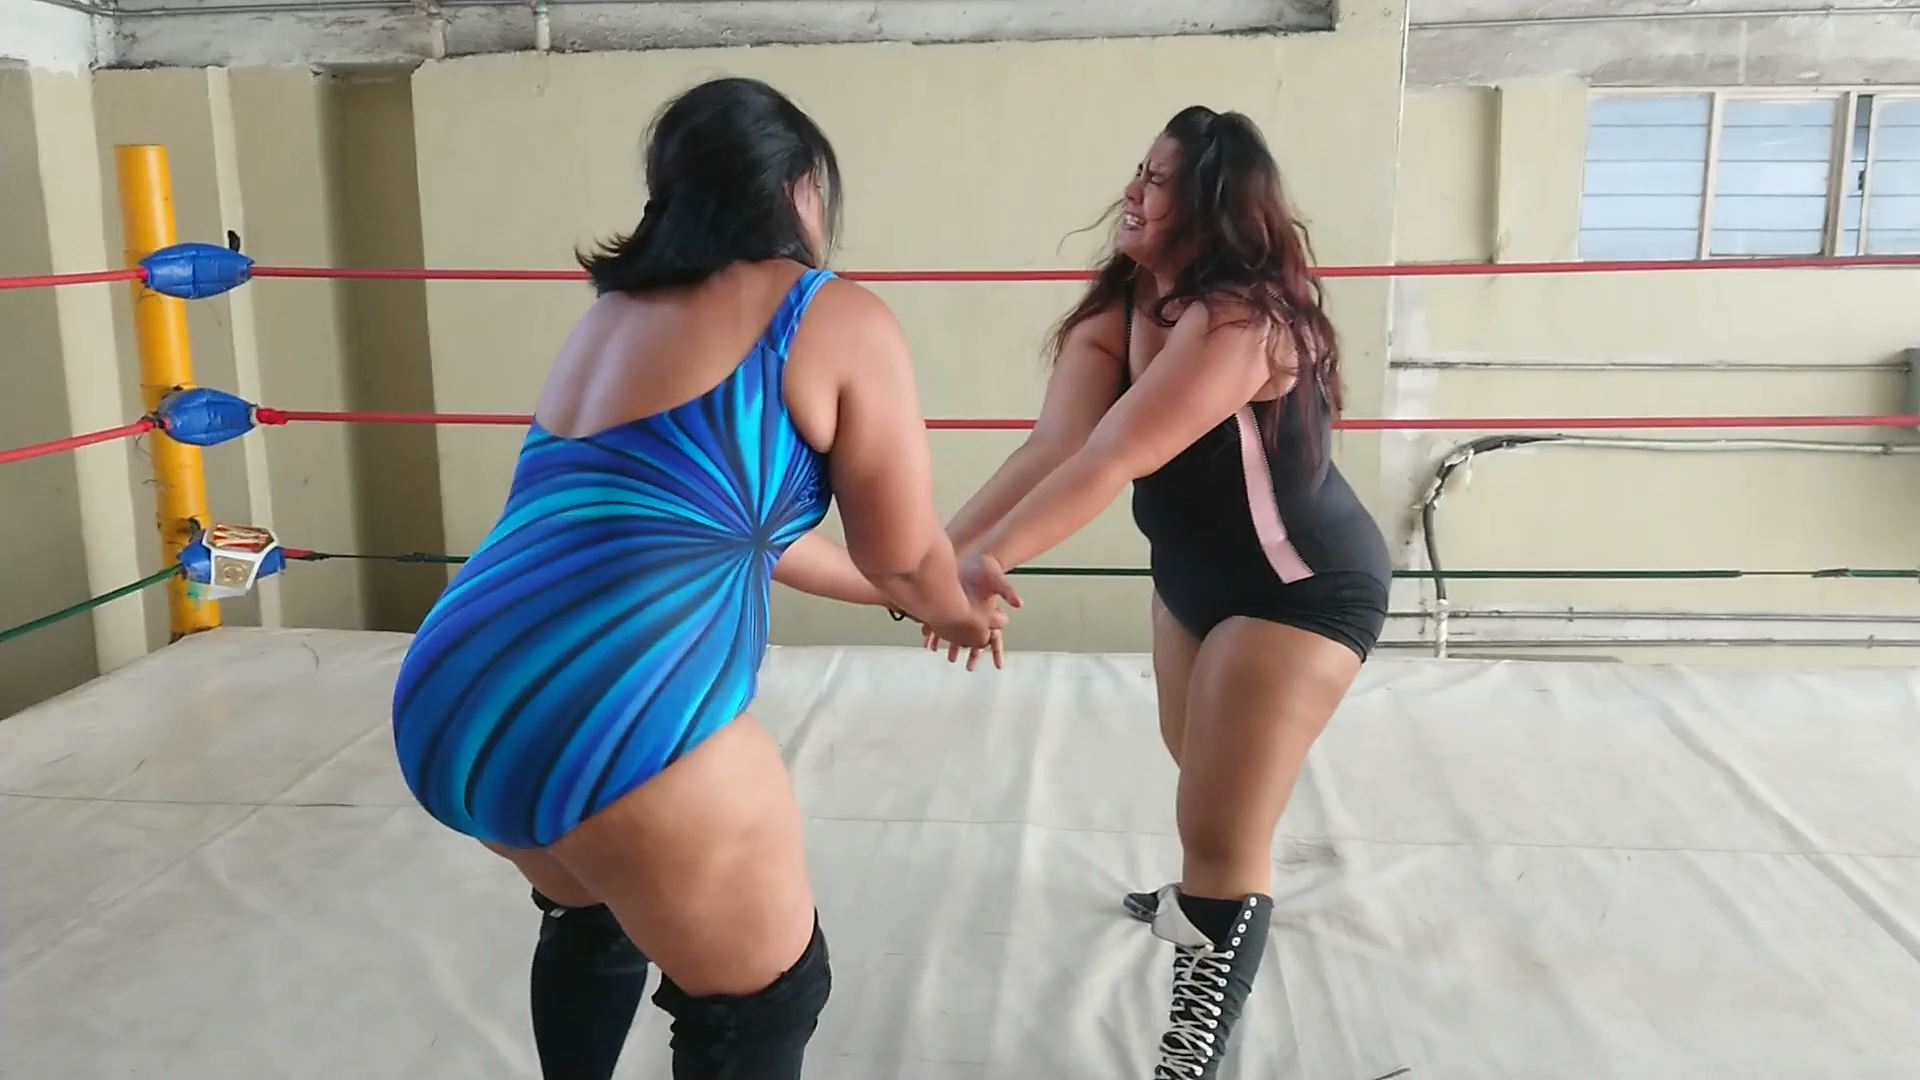 2019-04-28 DAMA VS FANTASY 1 (CAM 2) - CLF PRODS MEXICO - FULL HD/1080p/MP4